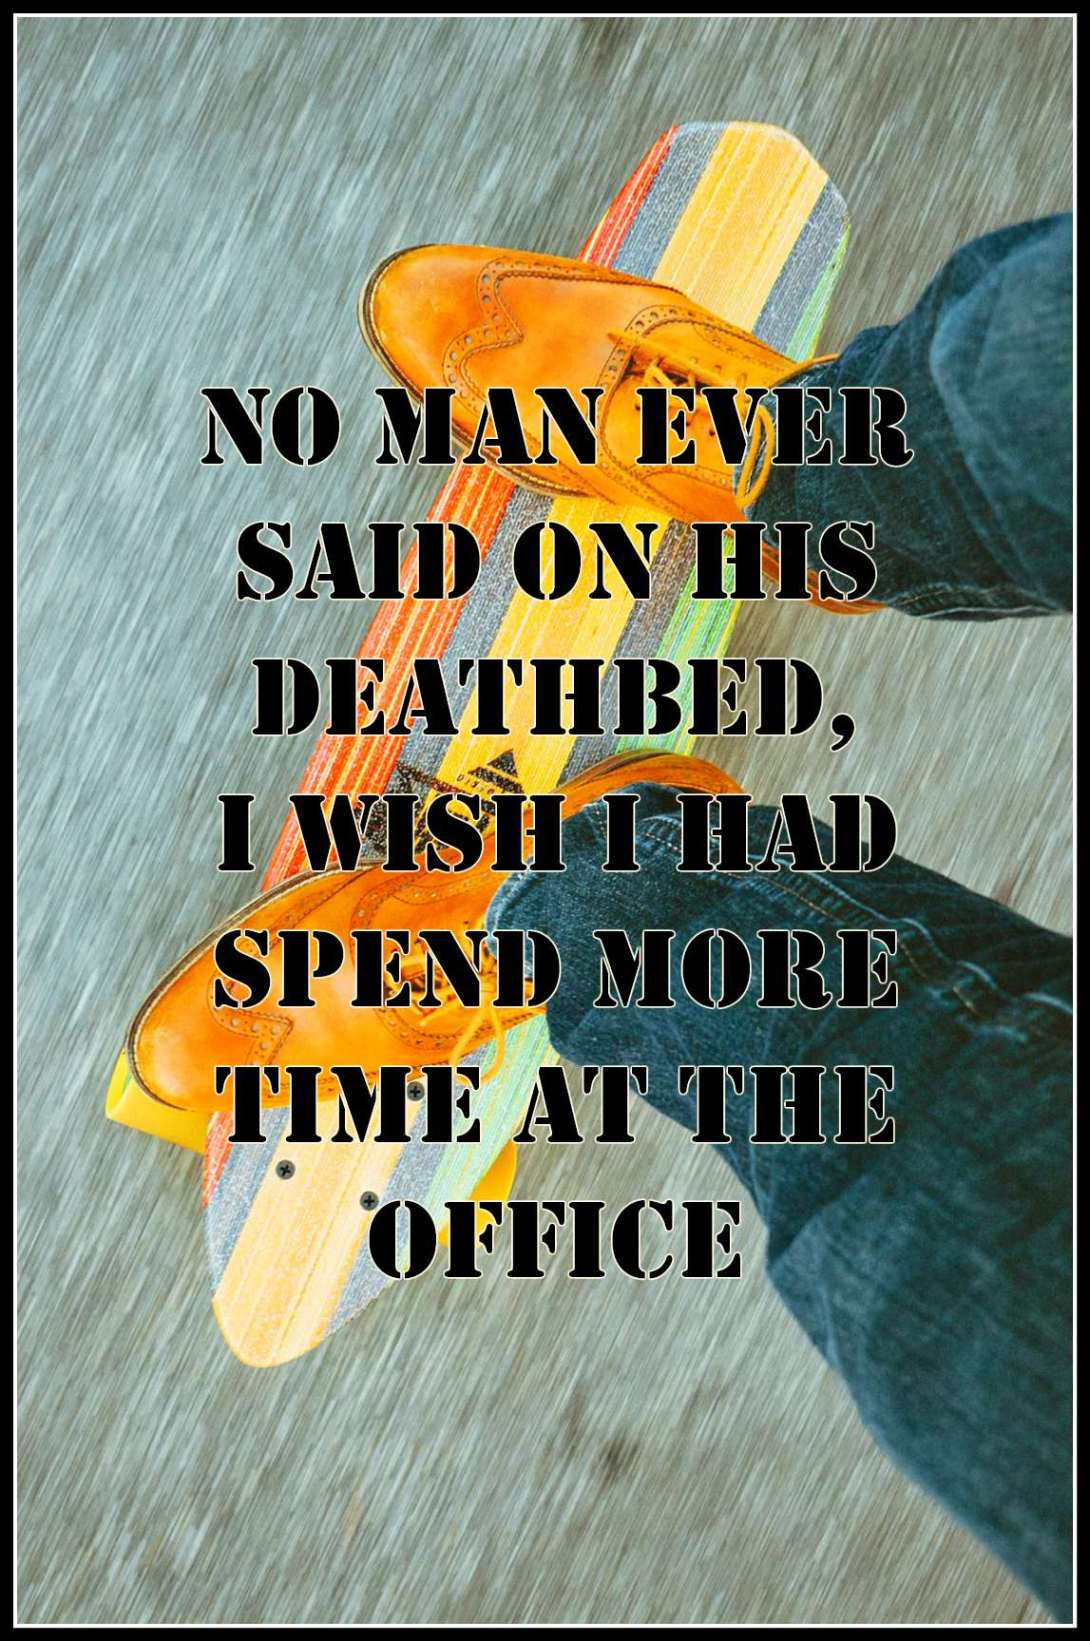 be kitschig #quote No man ever said on his deathbed I wish I had spend more time at the office